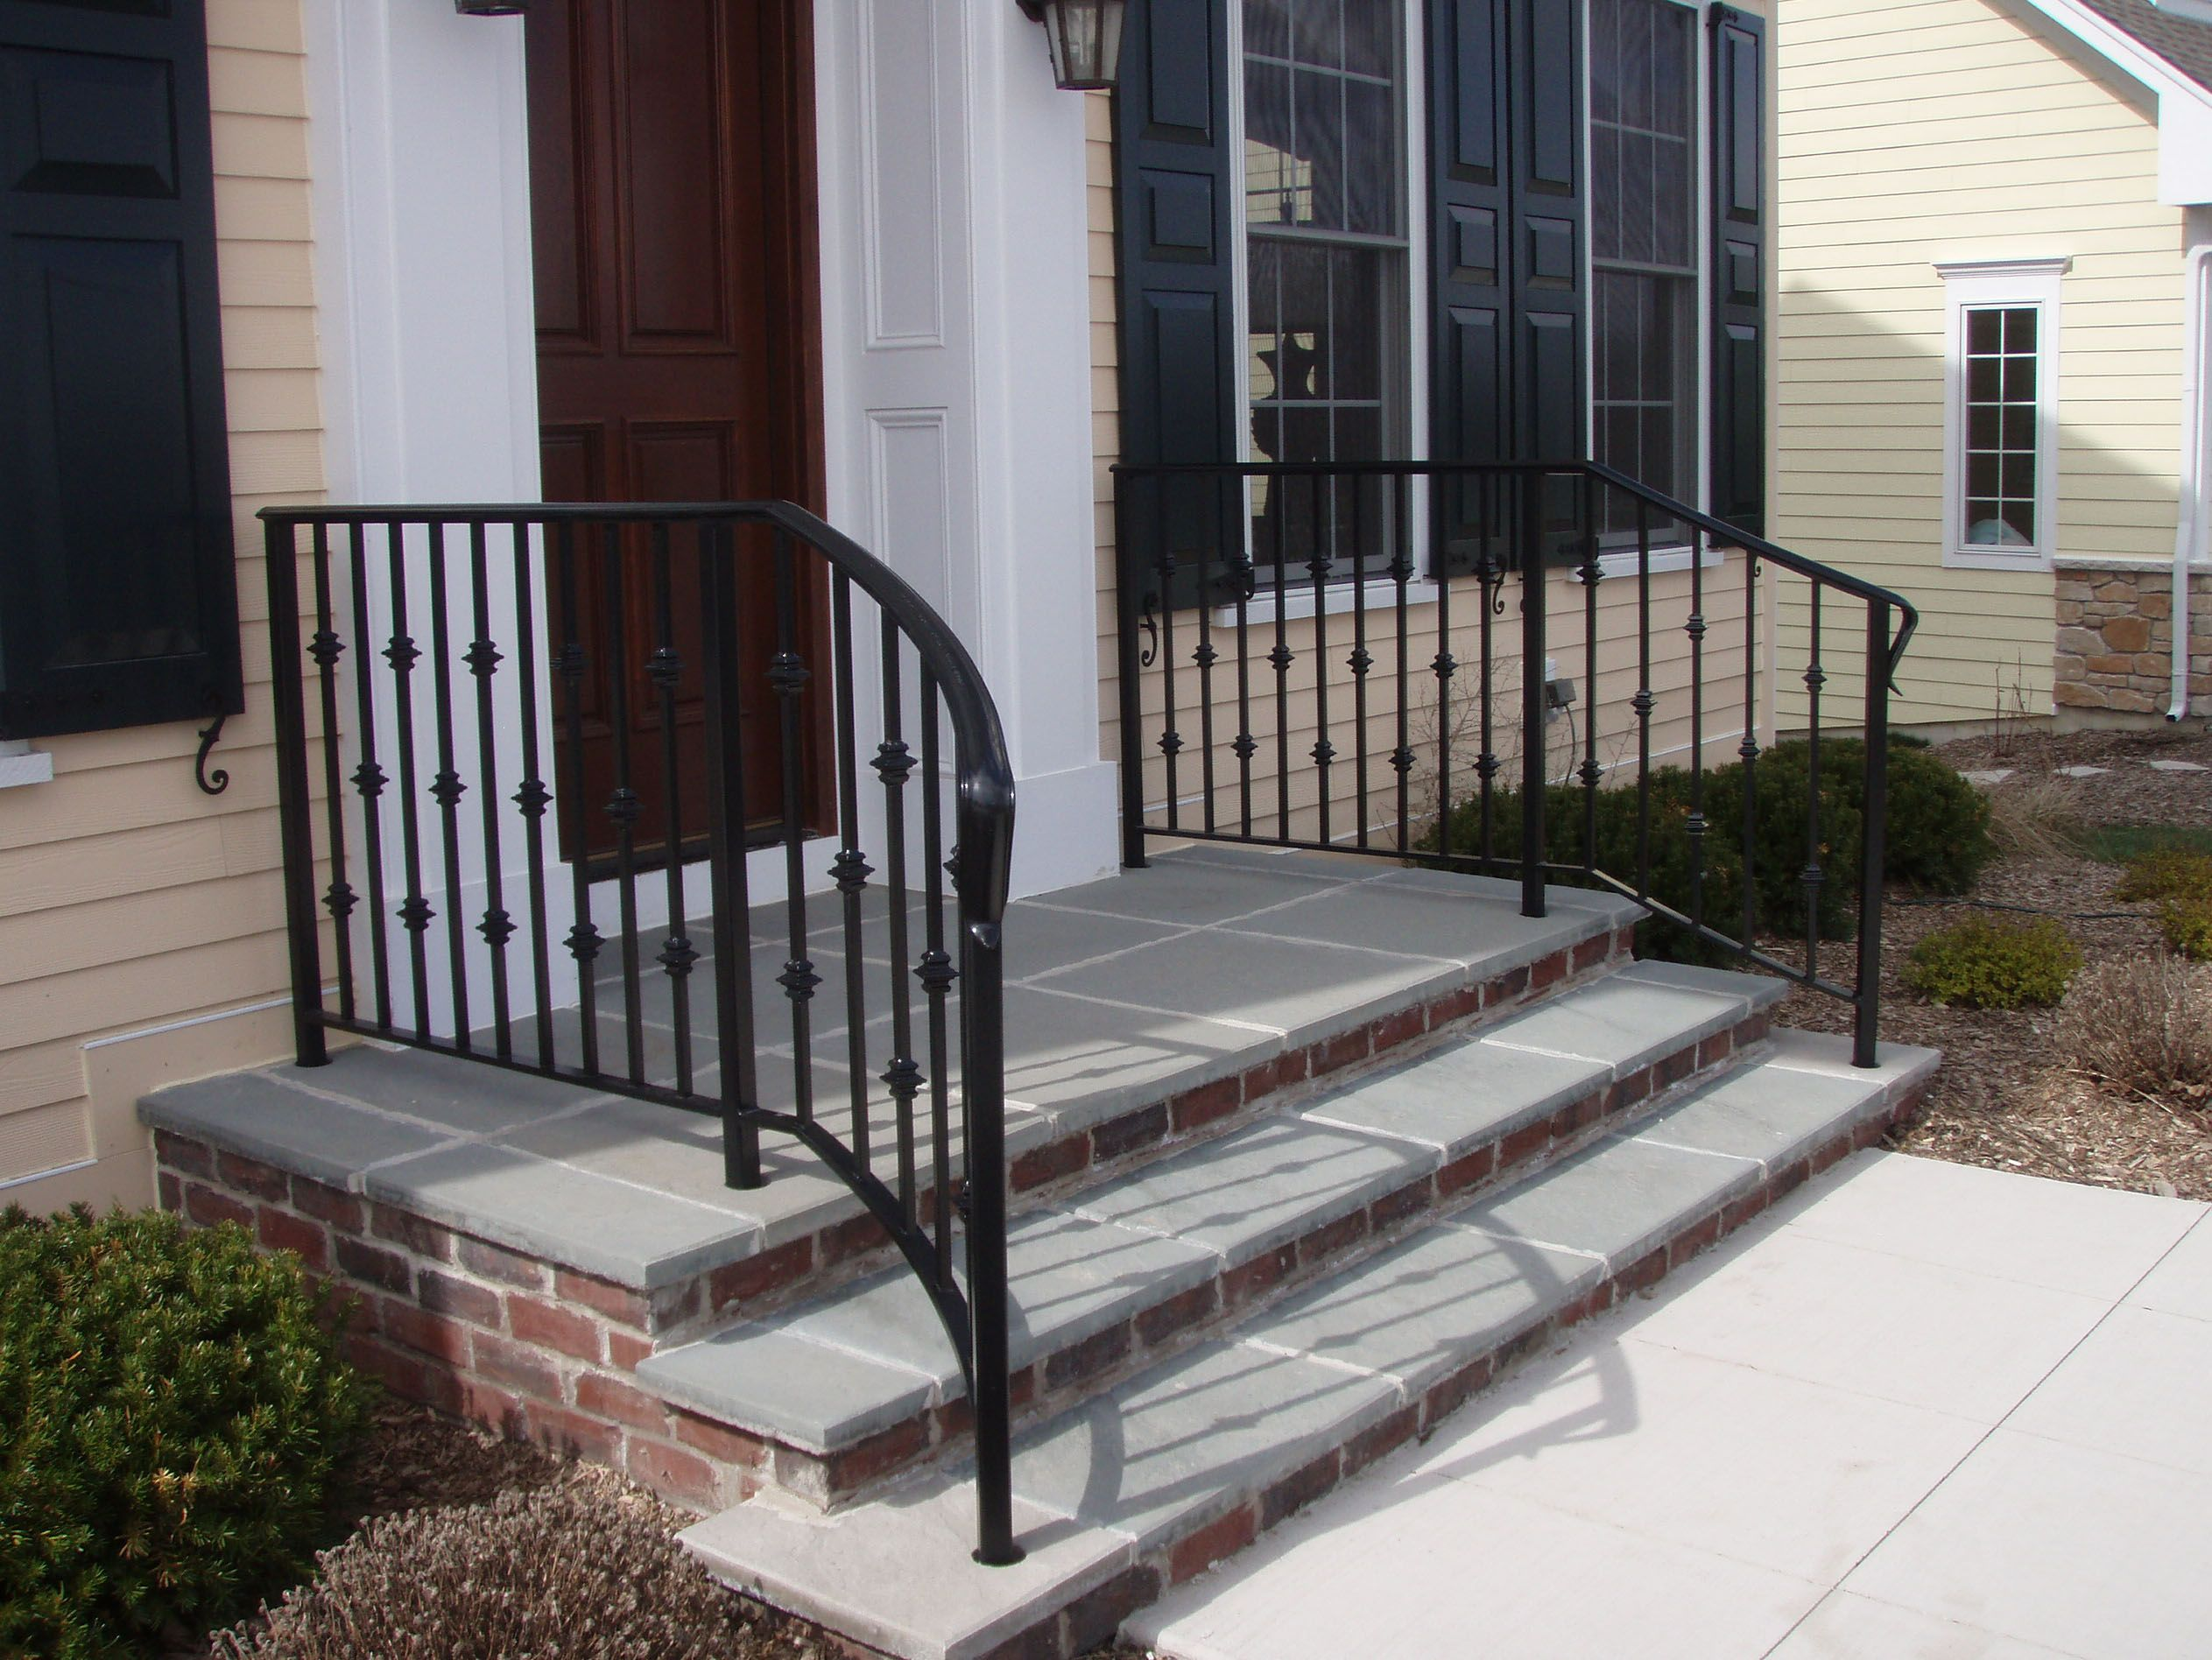 Wrought Iron Railings Curving Away From The Top Step I Like How